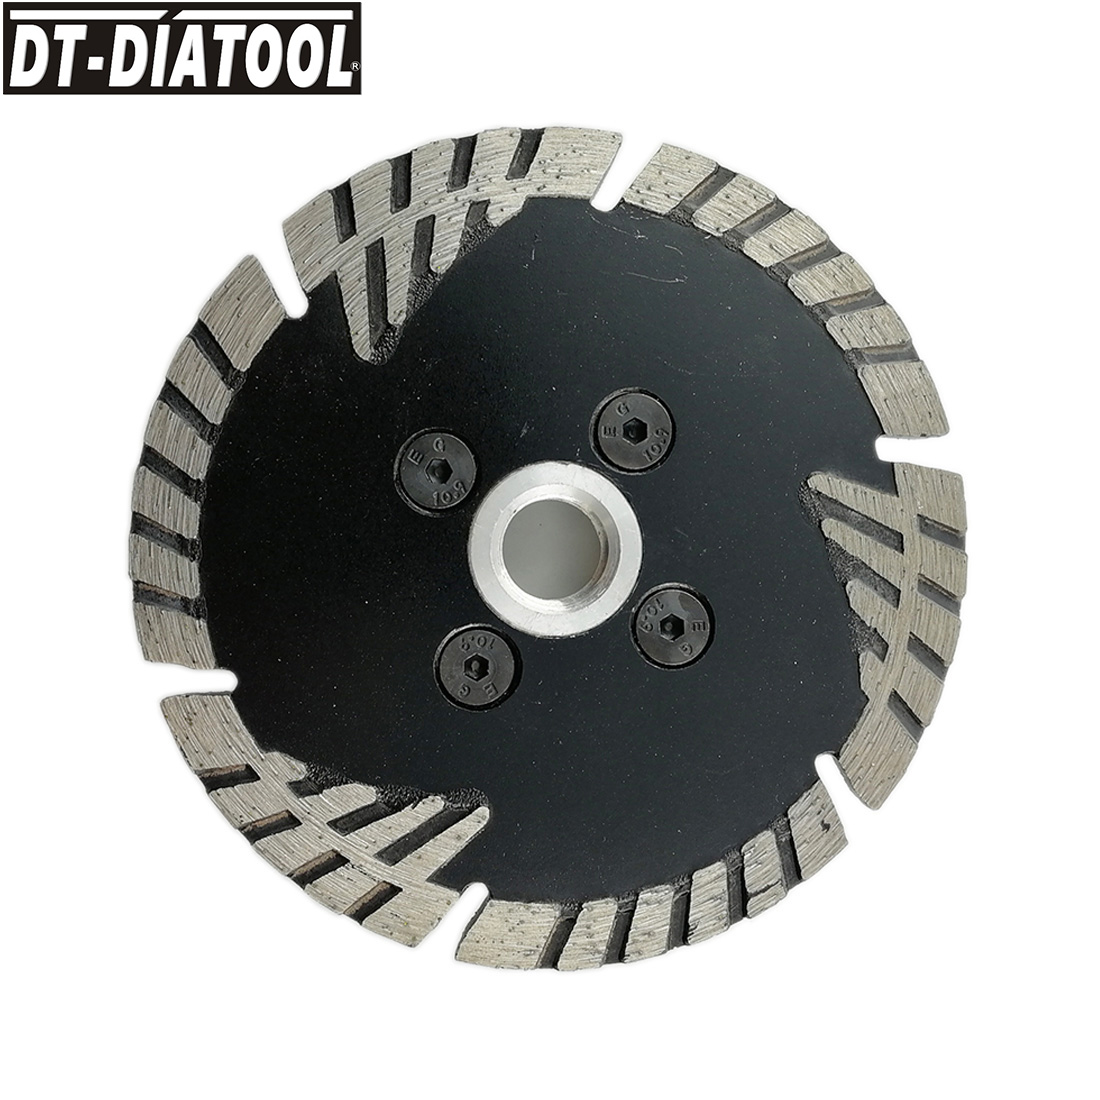 DT-DIATOOL 1unit Hot Pressed Diamond turbo Saw Blade with Slant Protection Teeth Cutting Disc for Brick Granite Marble 4